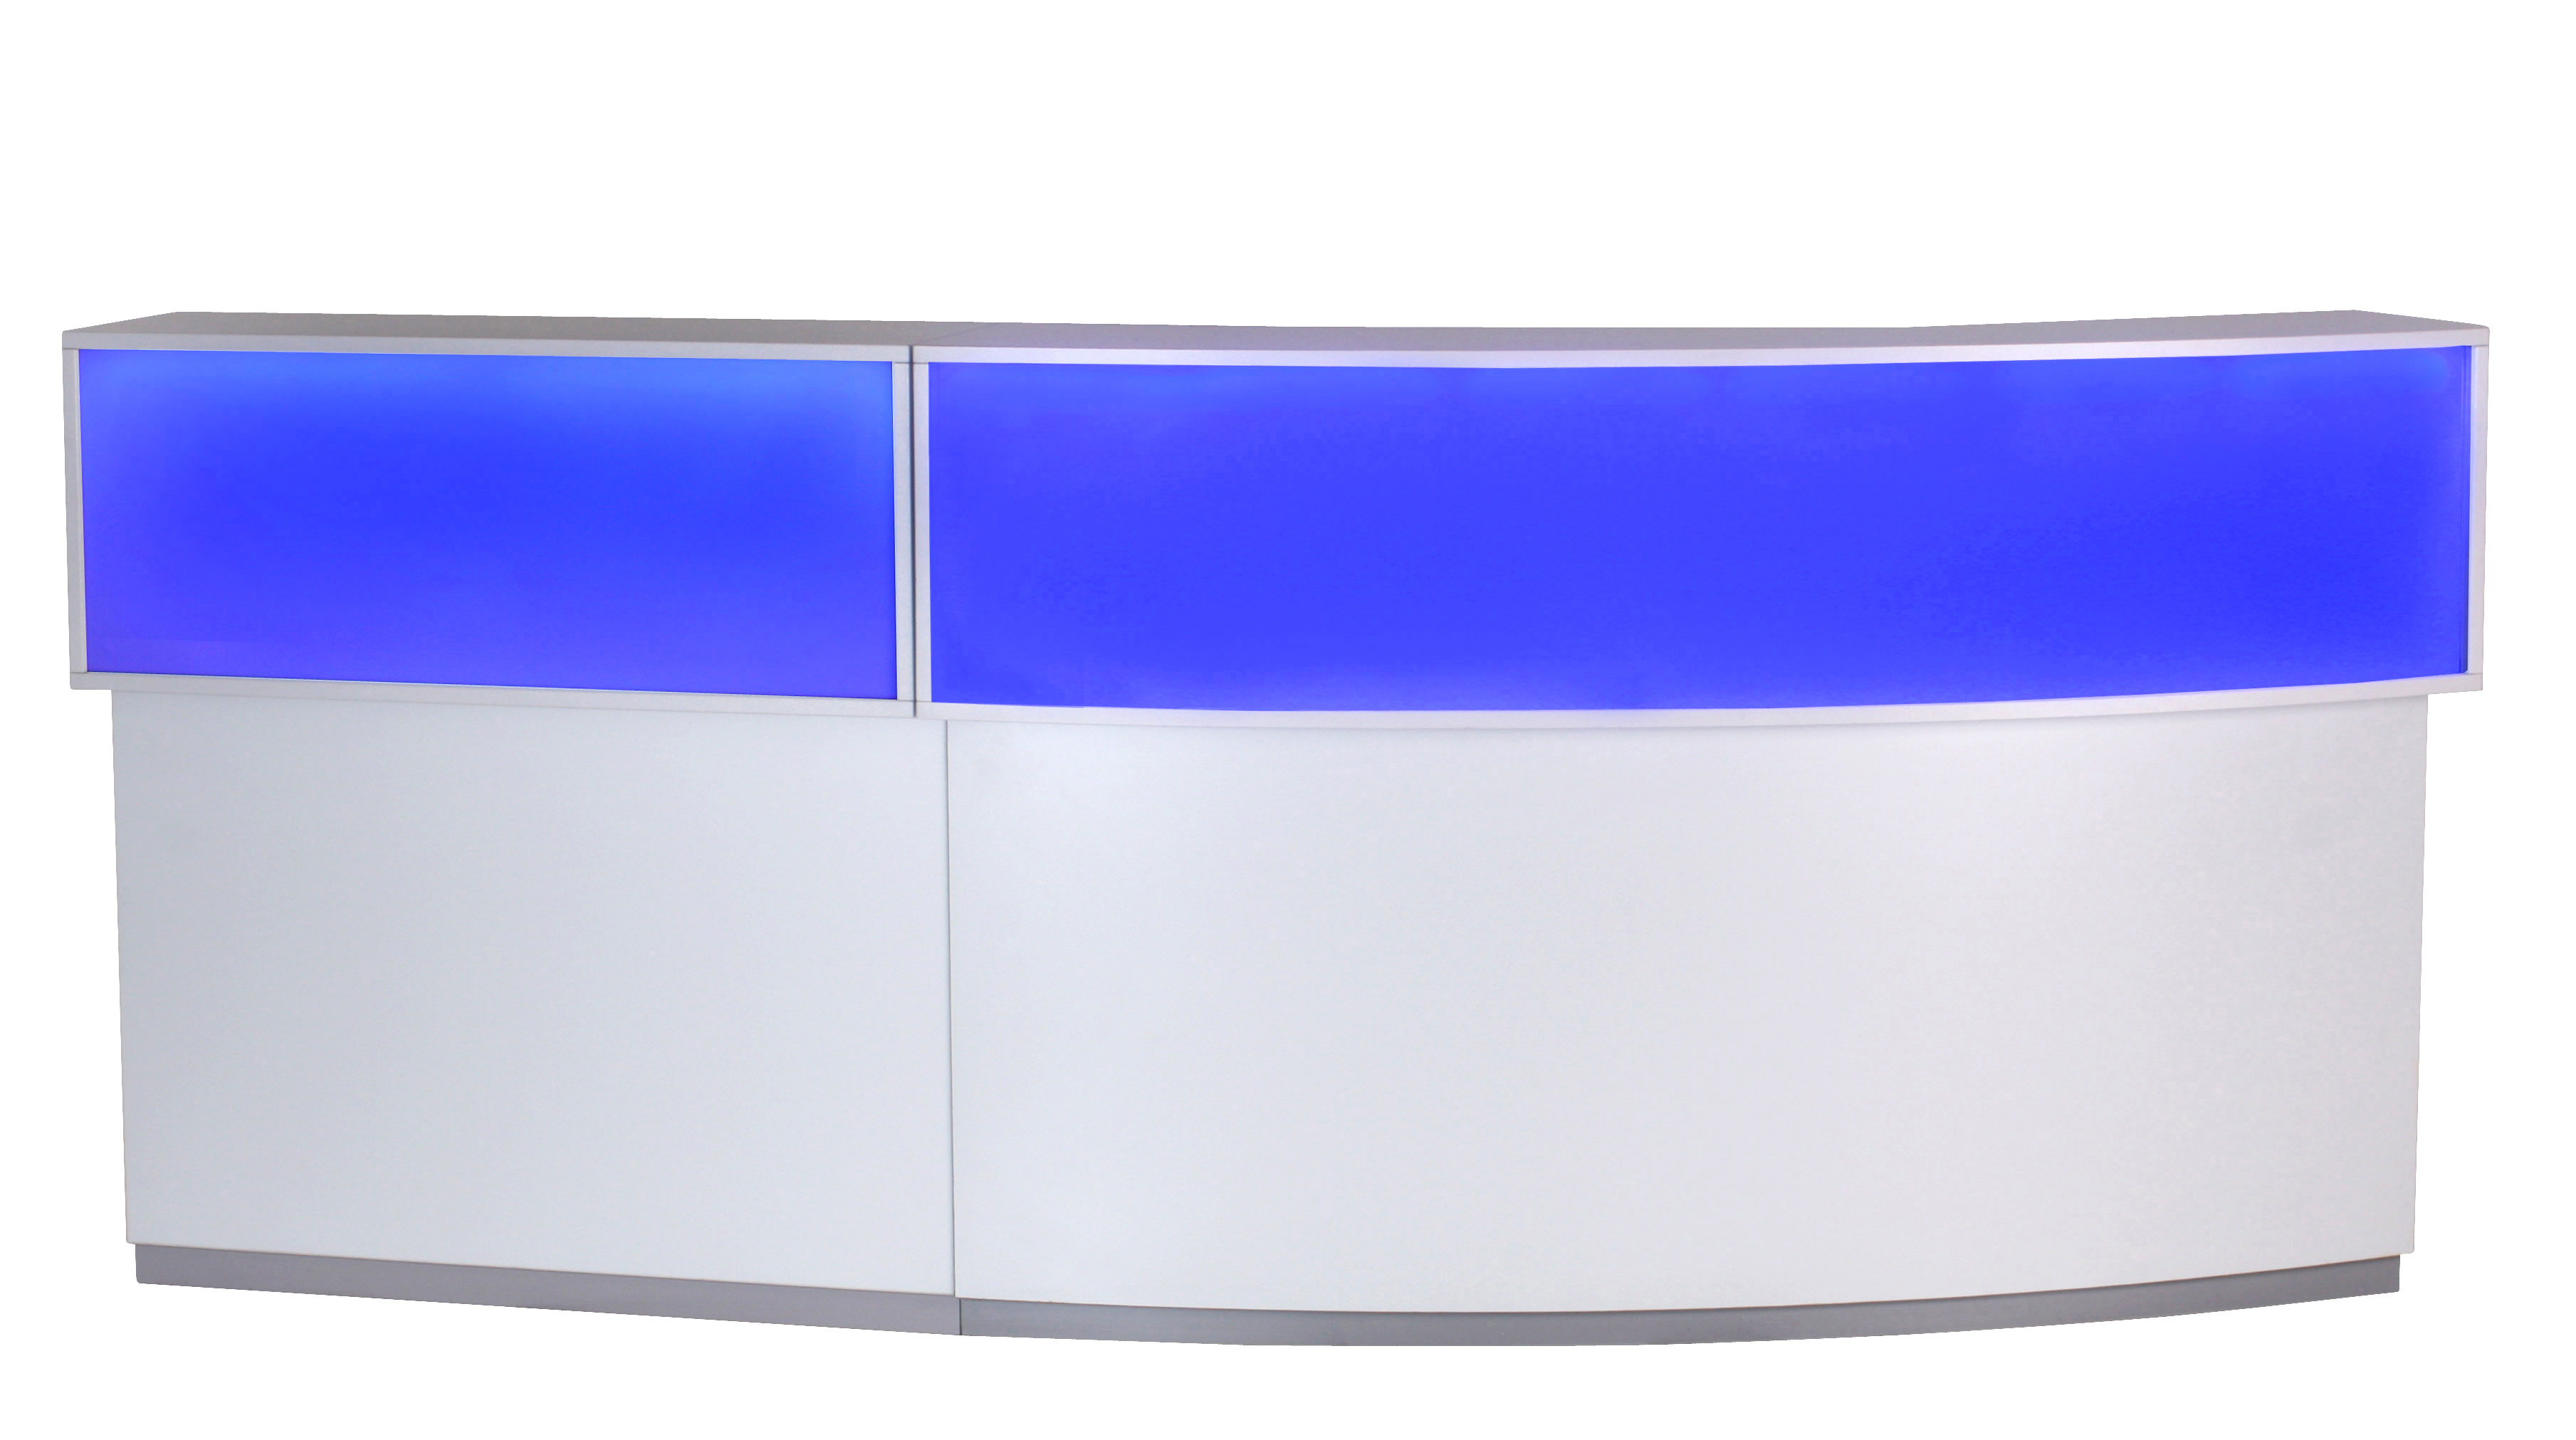 Counter mit led beleuchtung